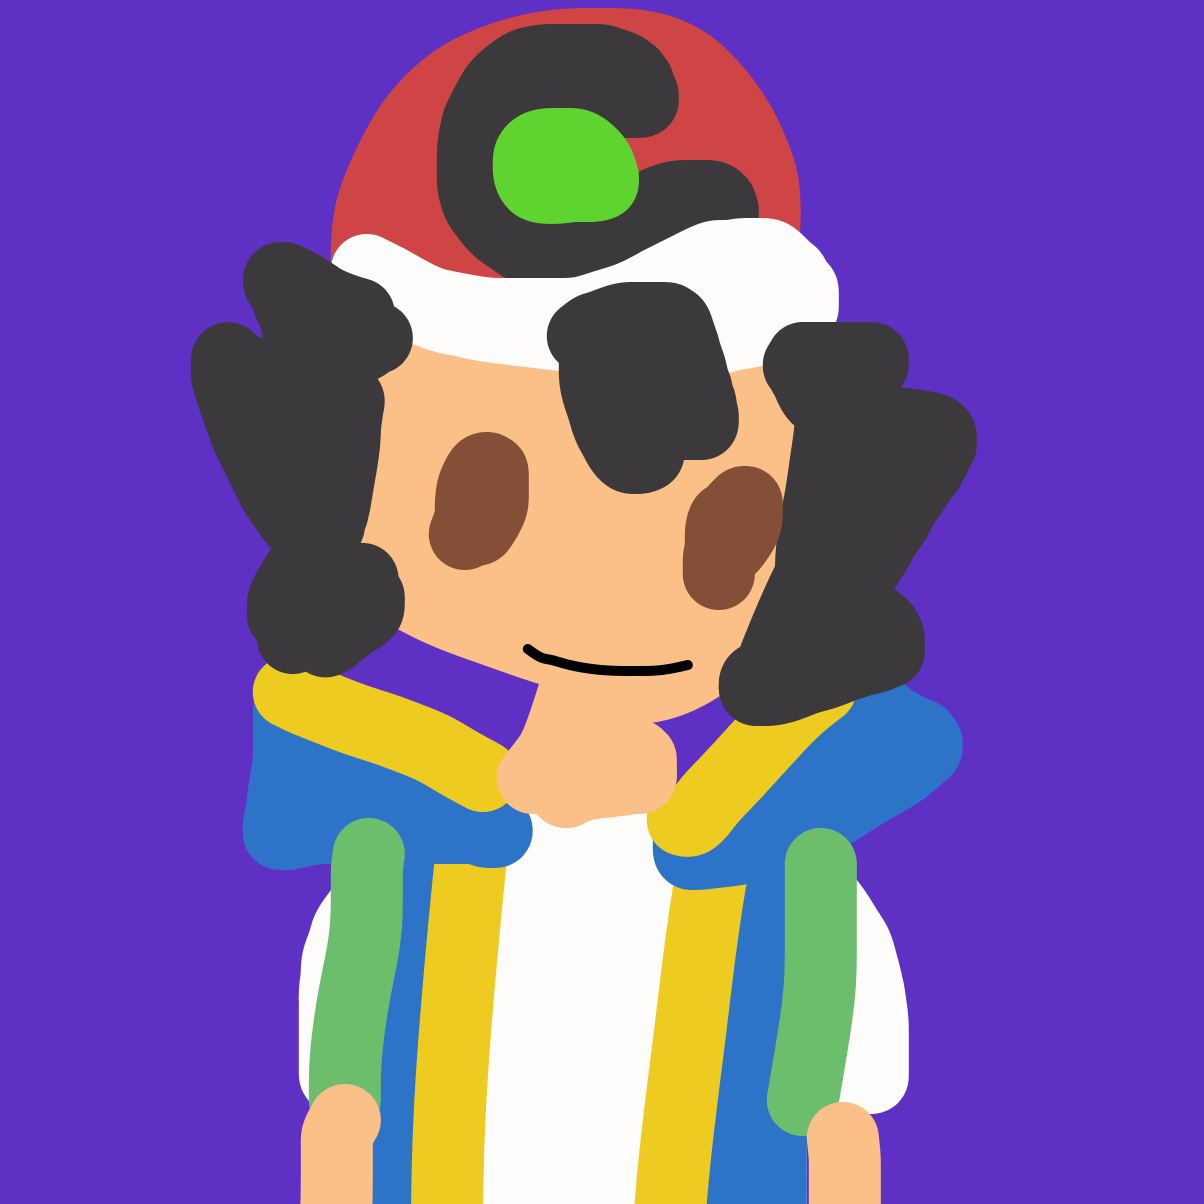 Profile picture for the comic artist, Ash Ketchum